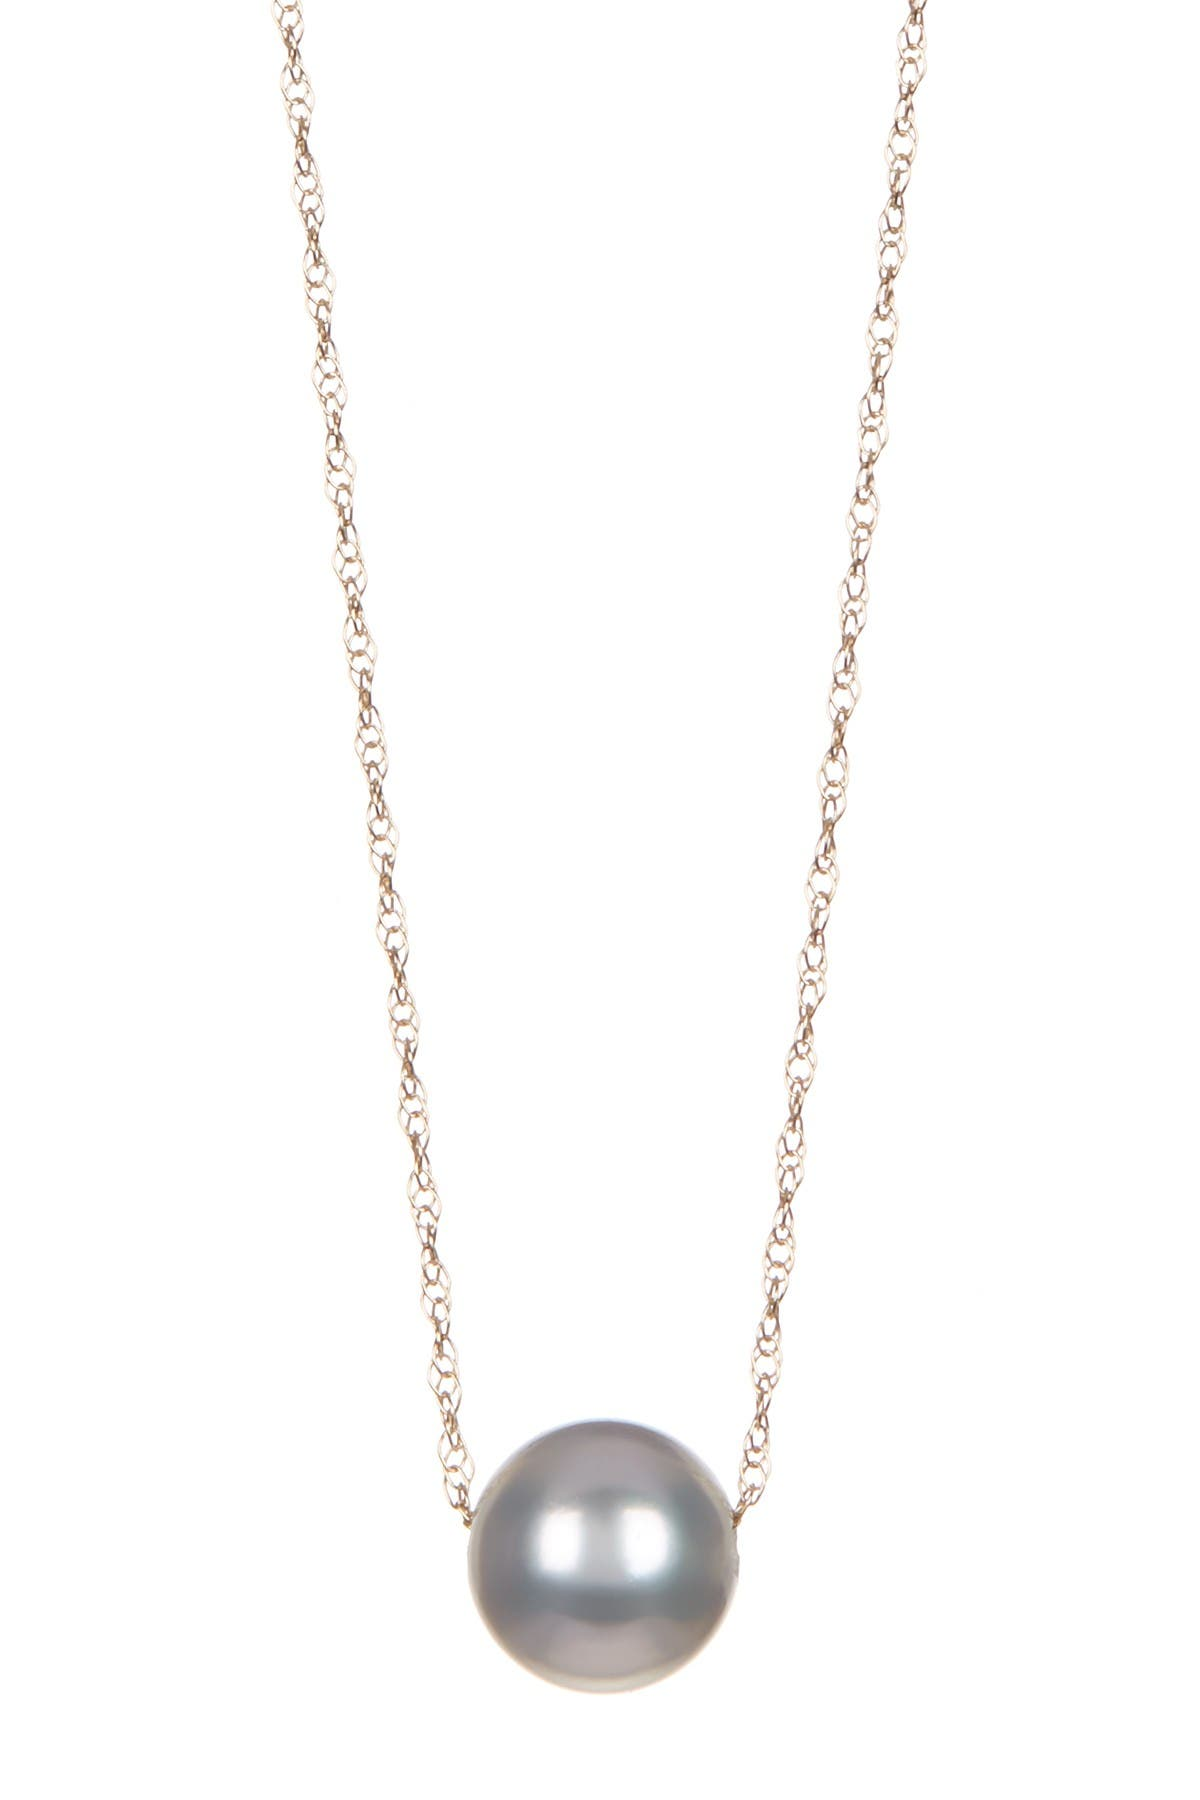 Image of Splendid Pearls 14K Yellow Gold Dyed Grey 8mm Akoya Pearl Slider Necklace